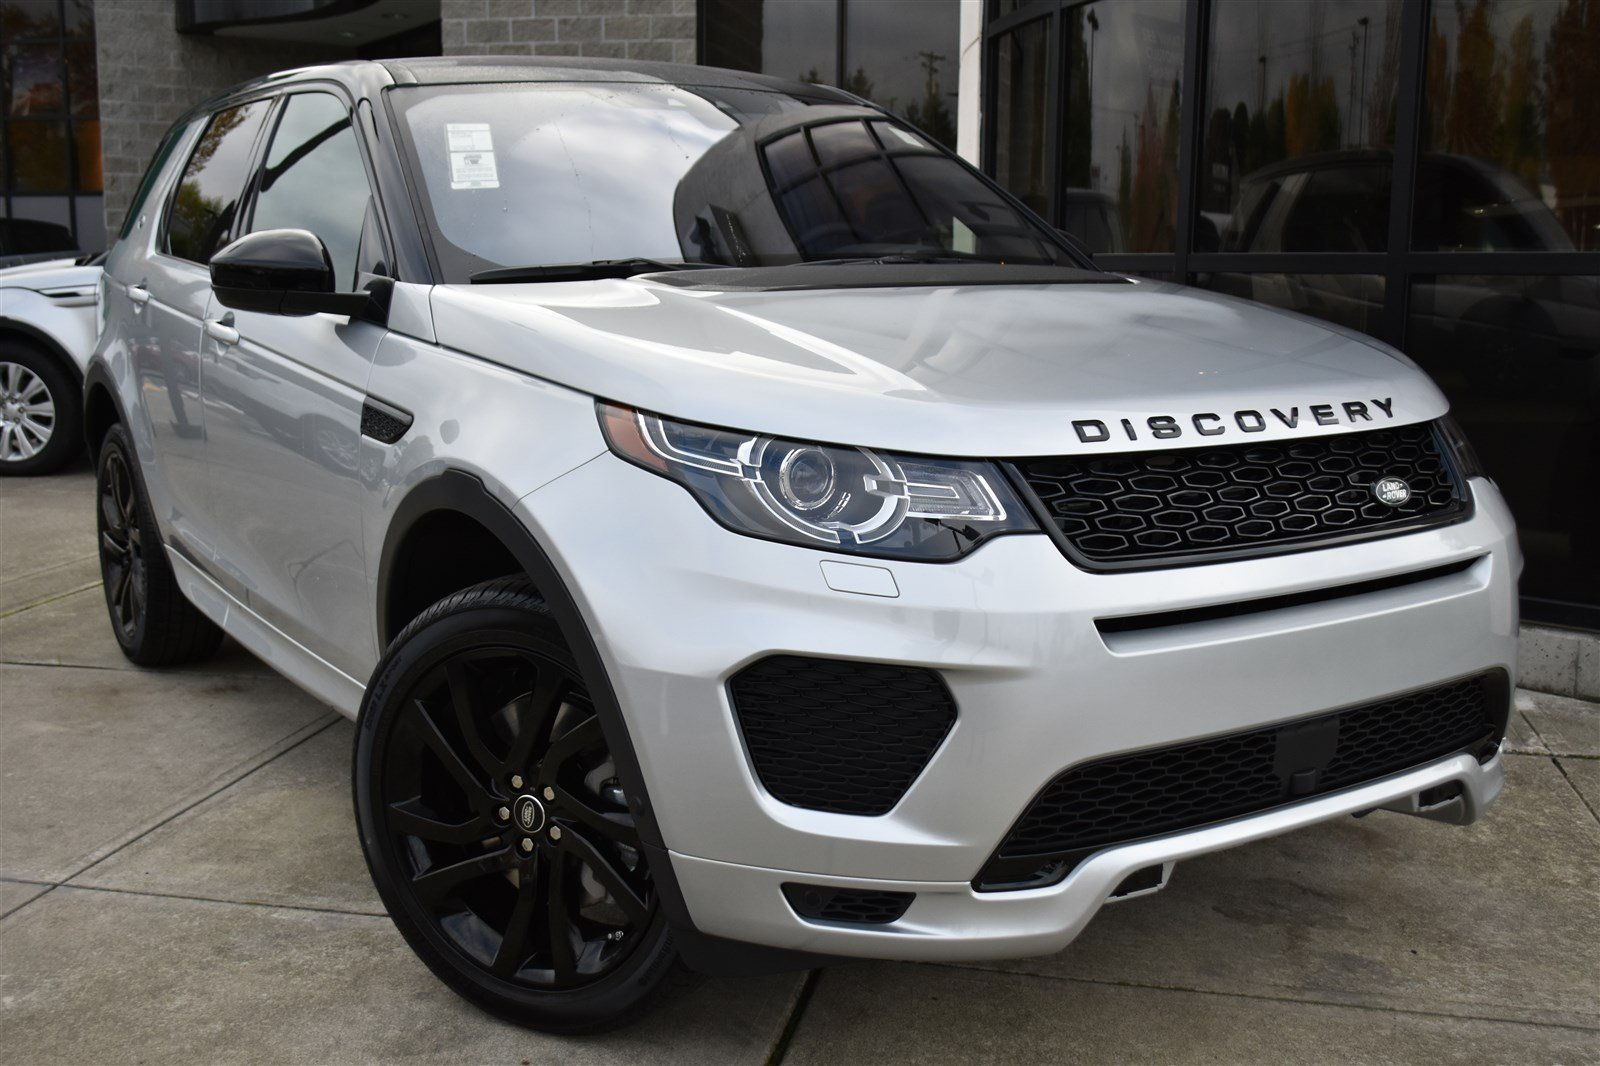 2019 Land Rover Discovery Sport HSE 286hp 4WD